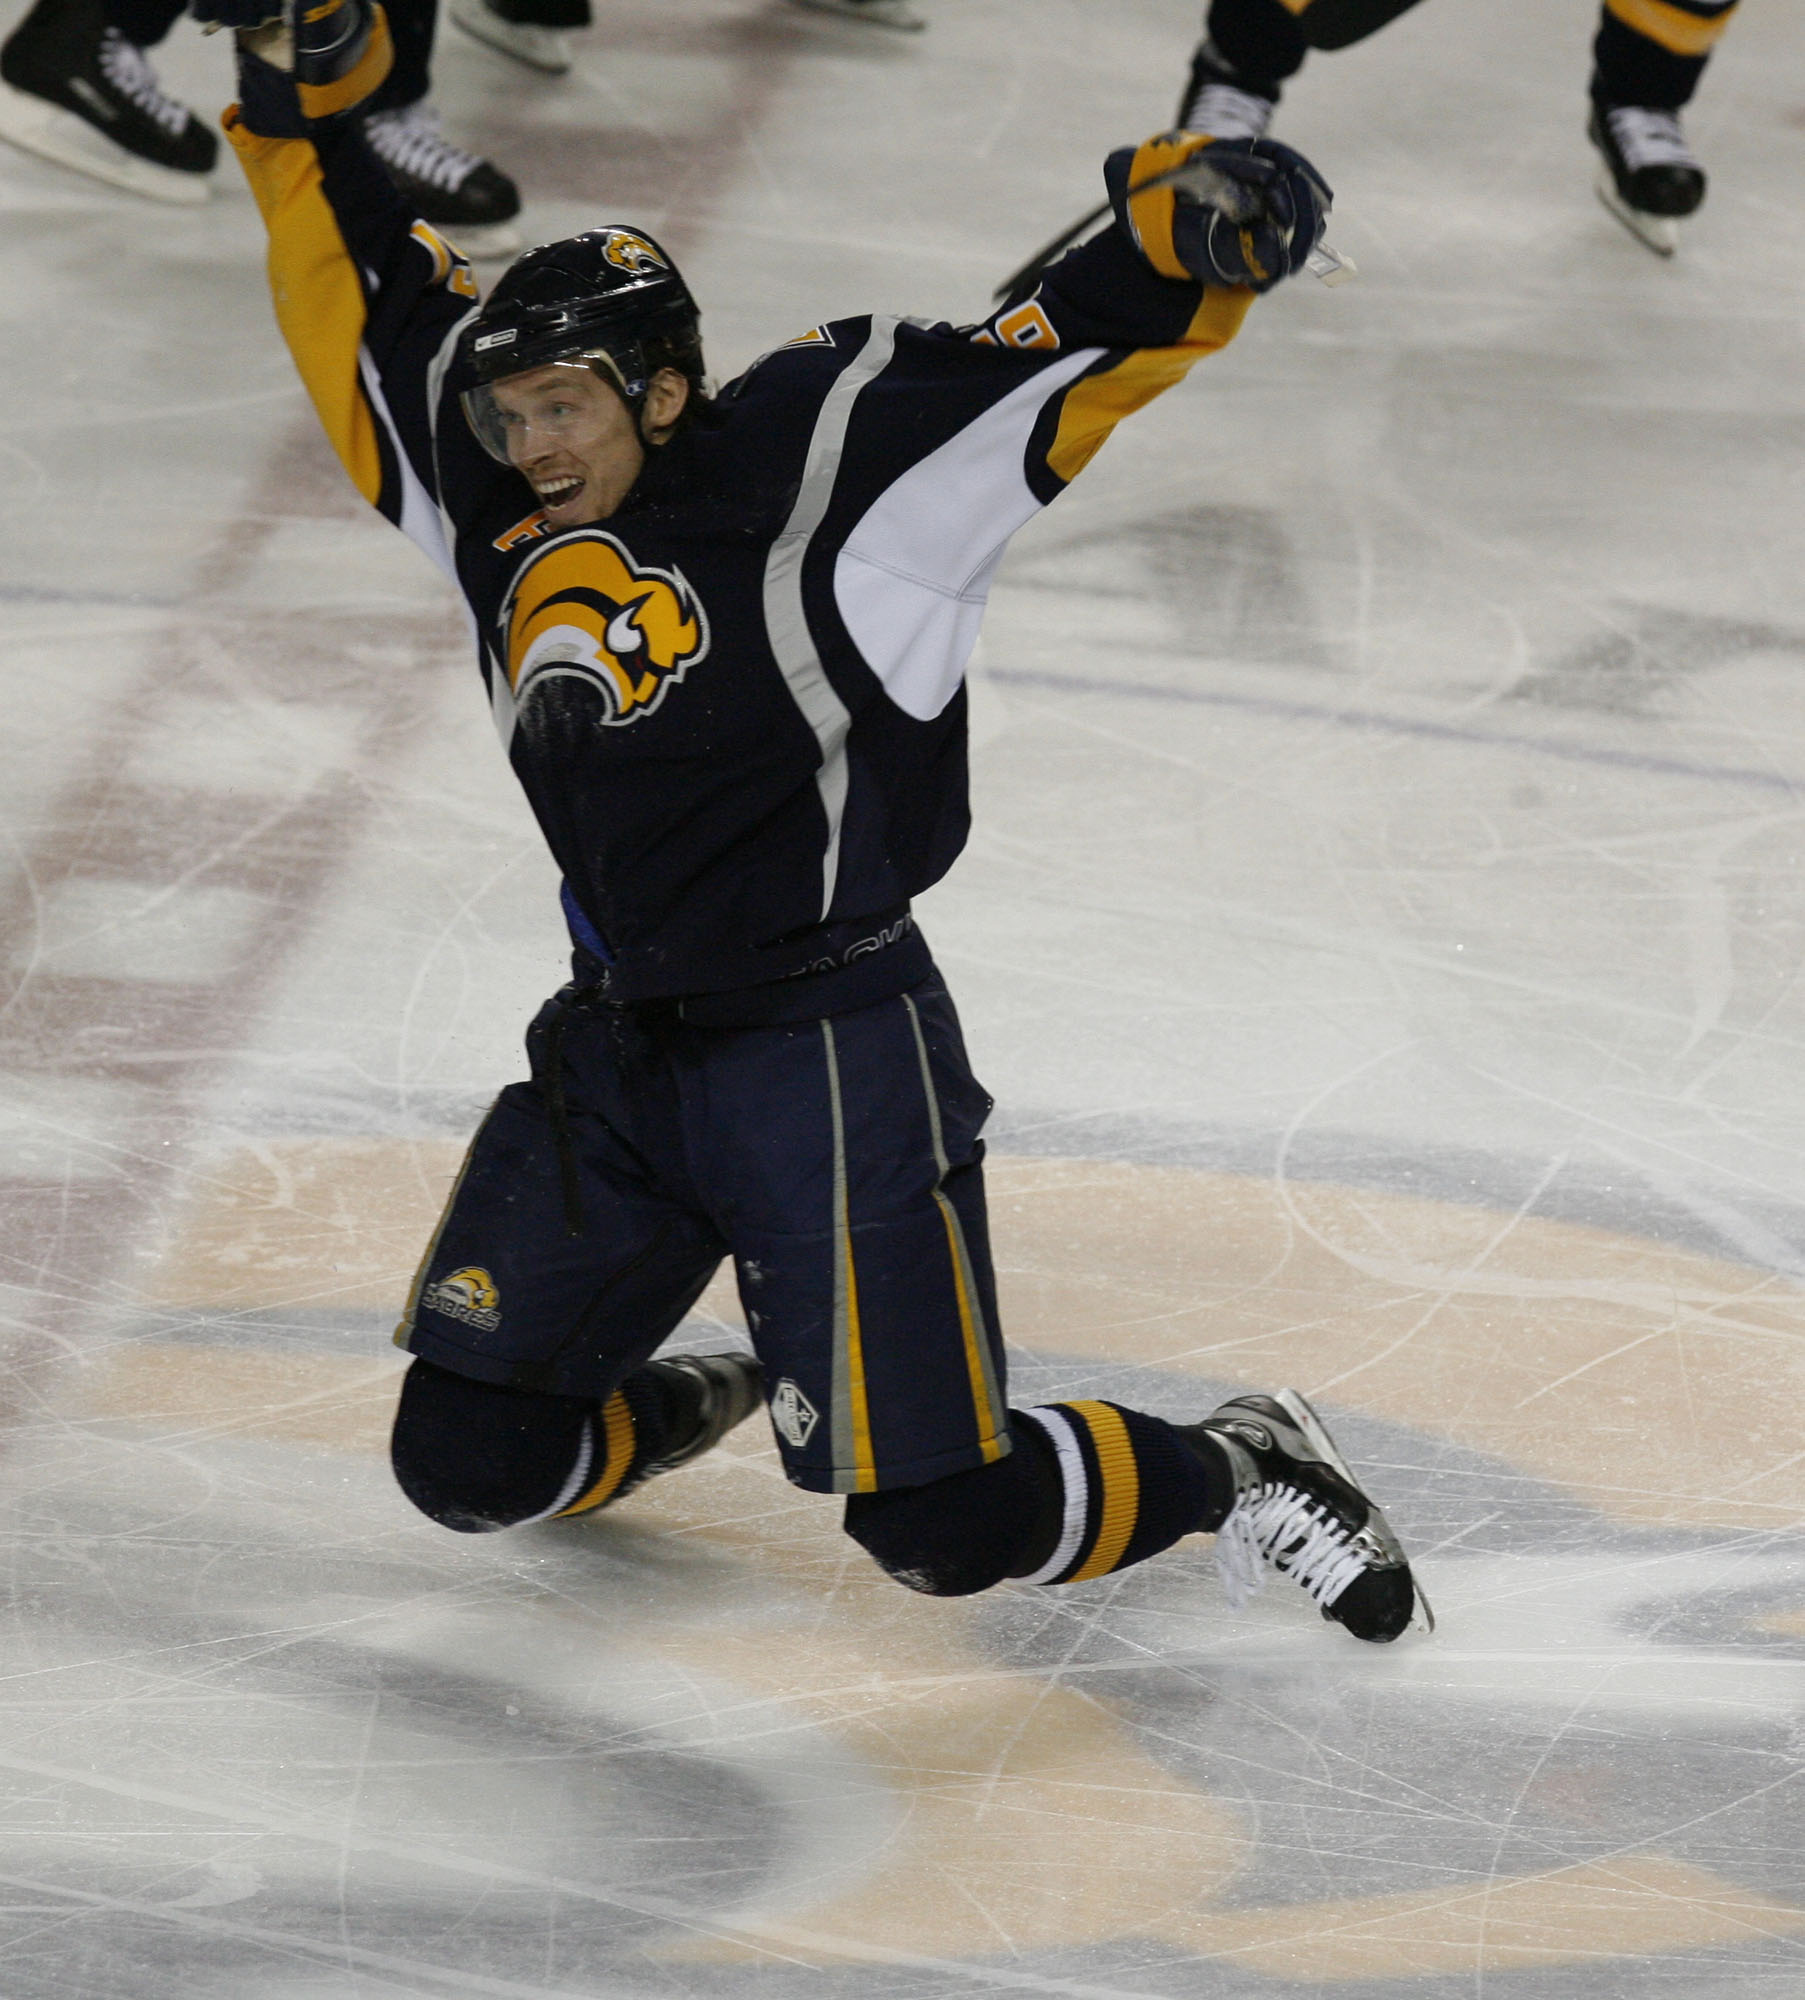 SPORTS Sabres---- Buffalo Sabres Maxim Afinogenov (61) react to his goal against New York Rangers in 1st Overtime period action of Game 5 of the Eastern Conference Semi finals at HSBC Arena in Buffalo , NY on Friday May 4, 2007. Photo by John Hickey